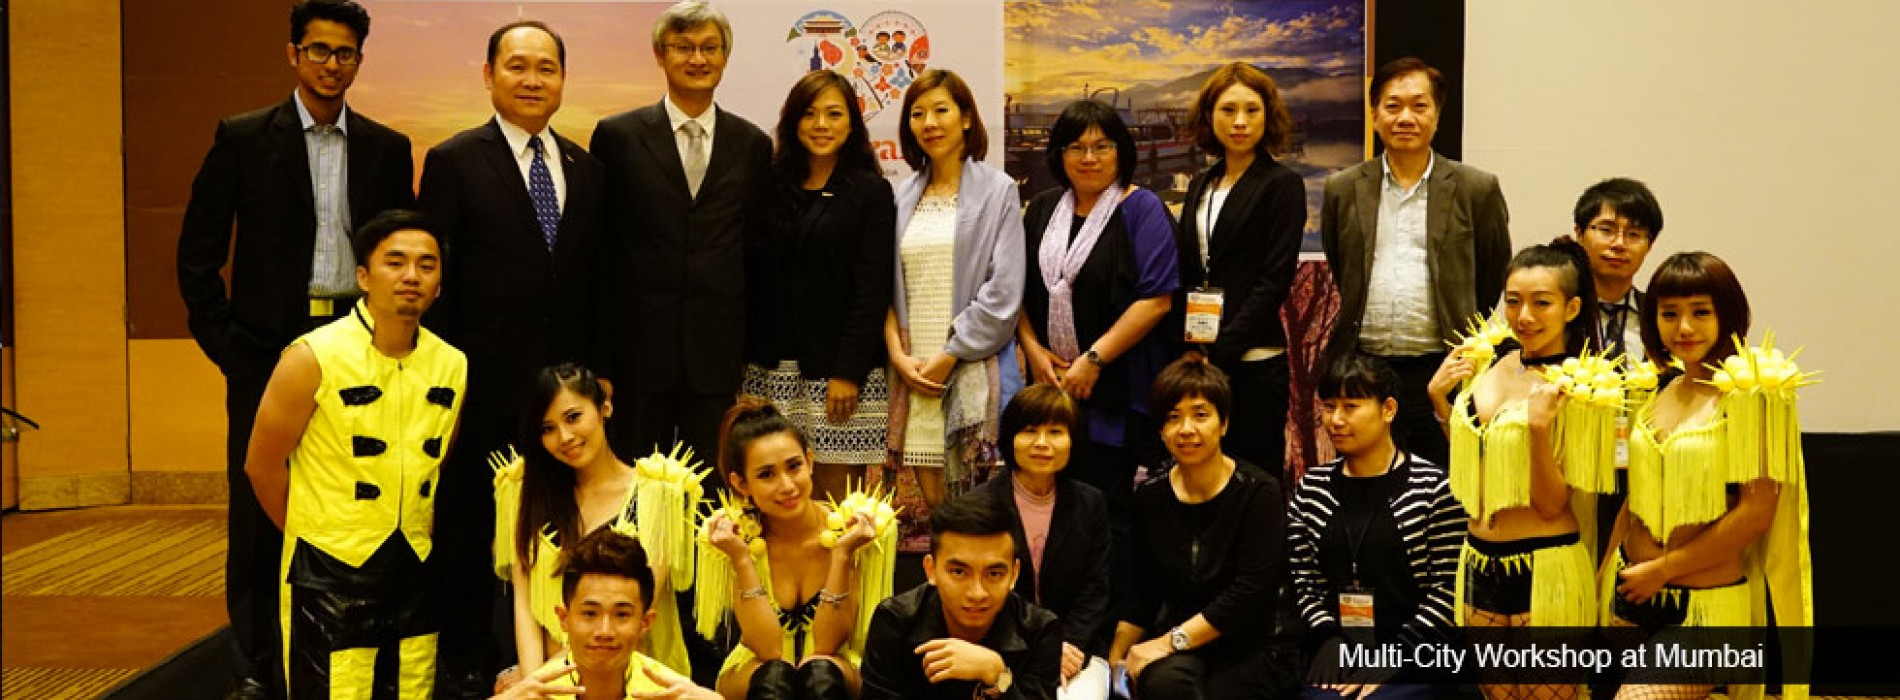 Taiwan Tourism Bureau kicks off 2016 with a multi-city workshop